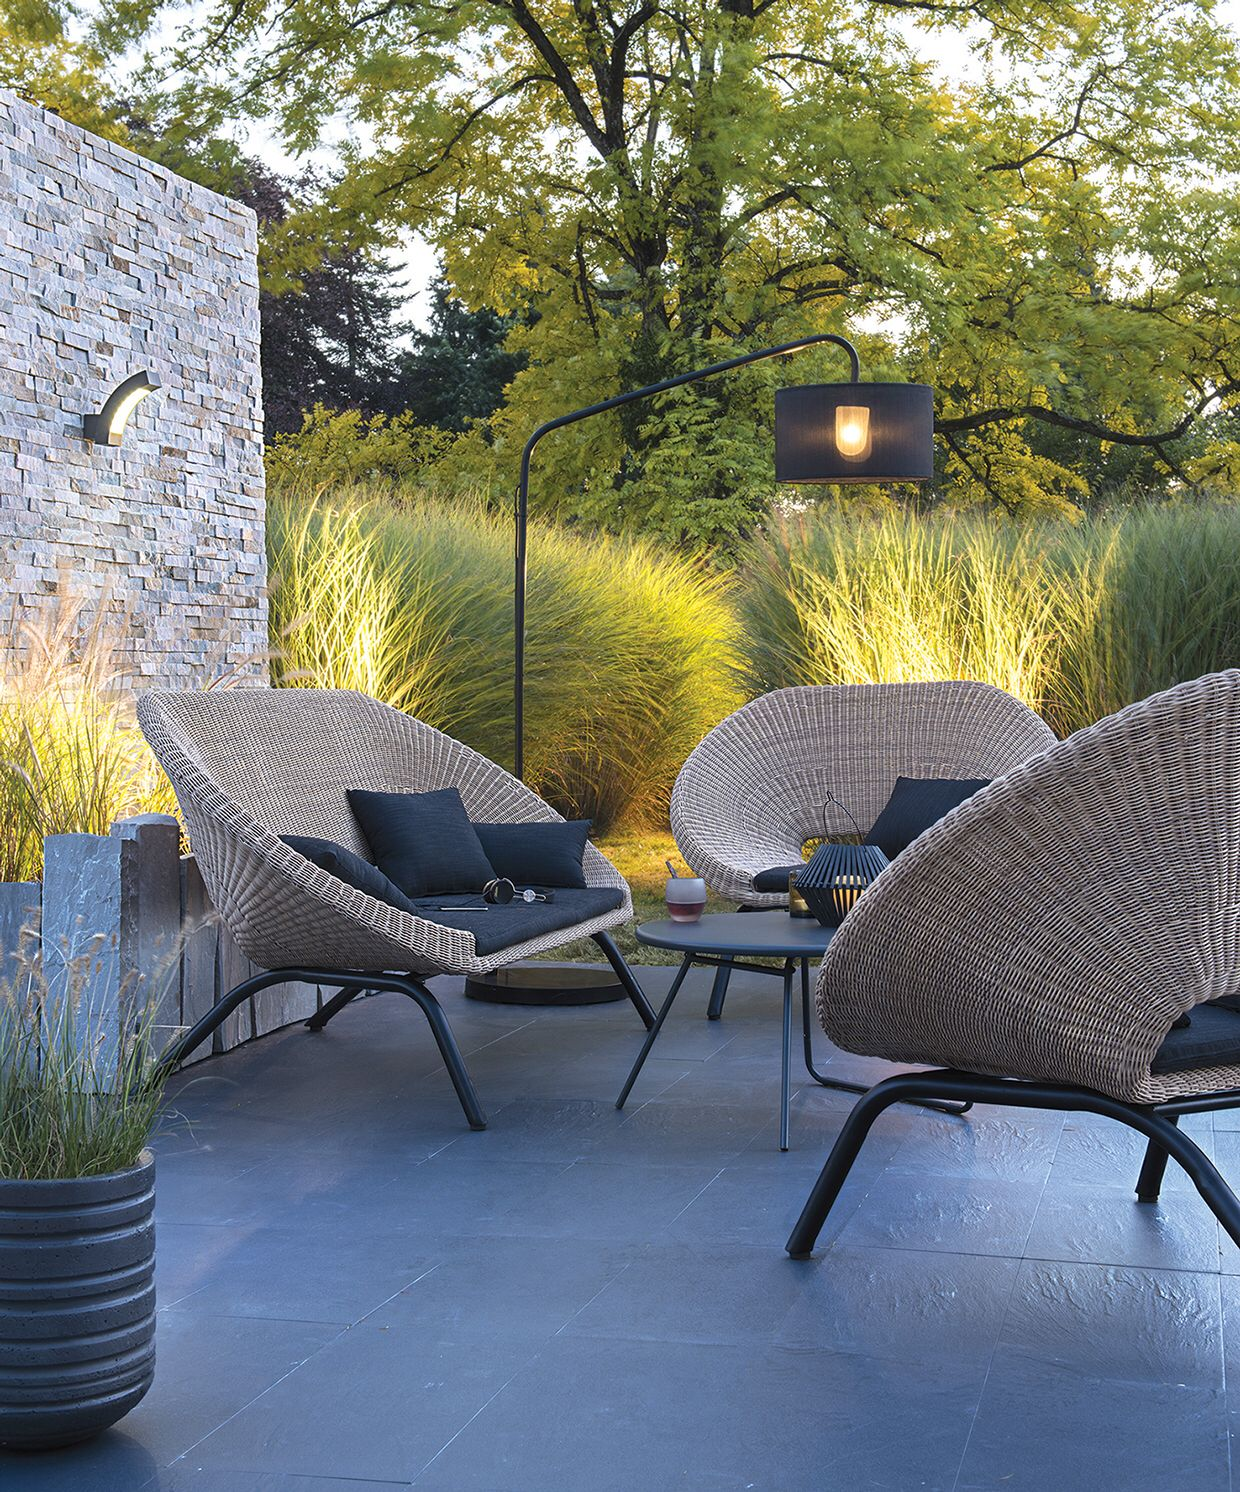 Stylish Modern Seating For The Garden Adamchristopherdesign Co Uk Modern Outdoor Furniture Terrace Design Outdoor Rooms